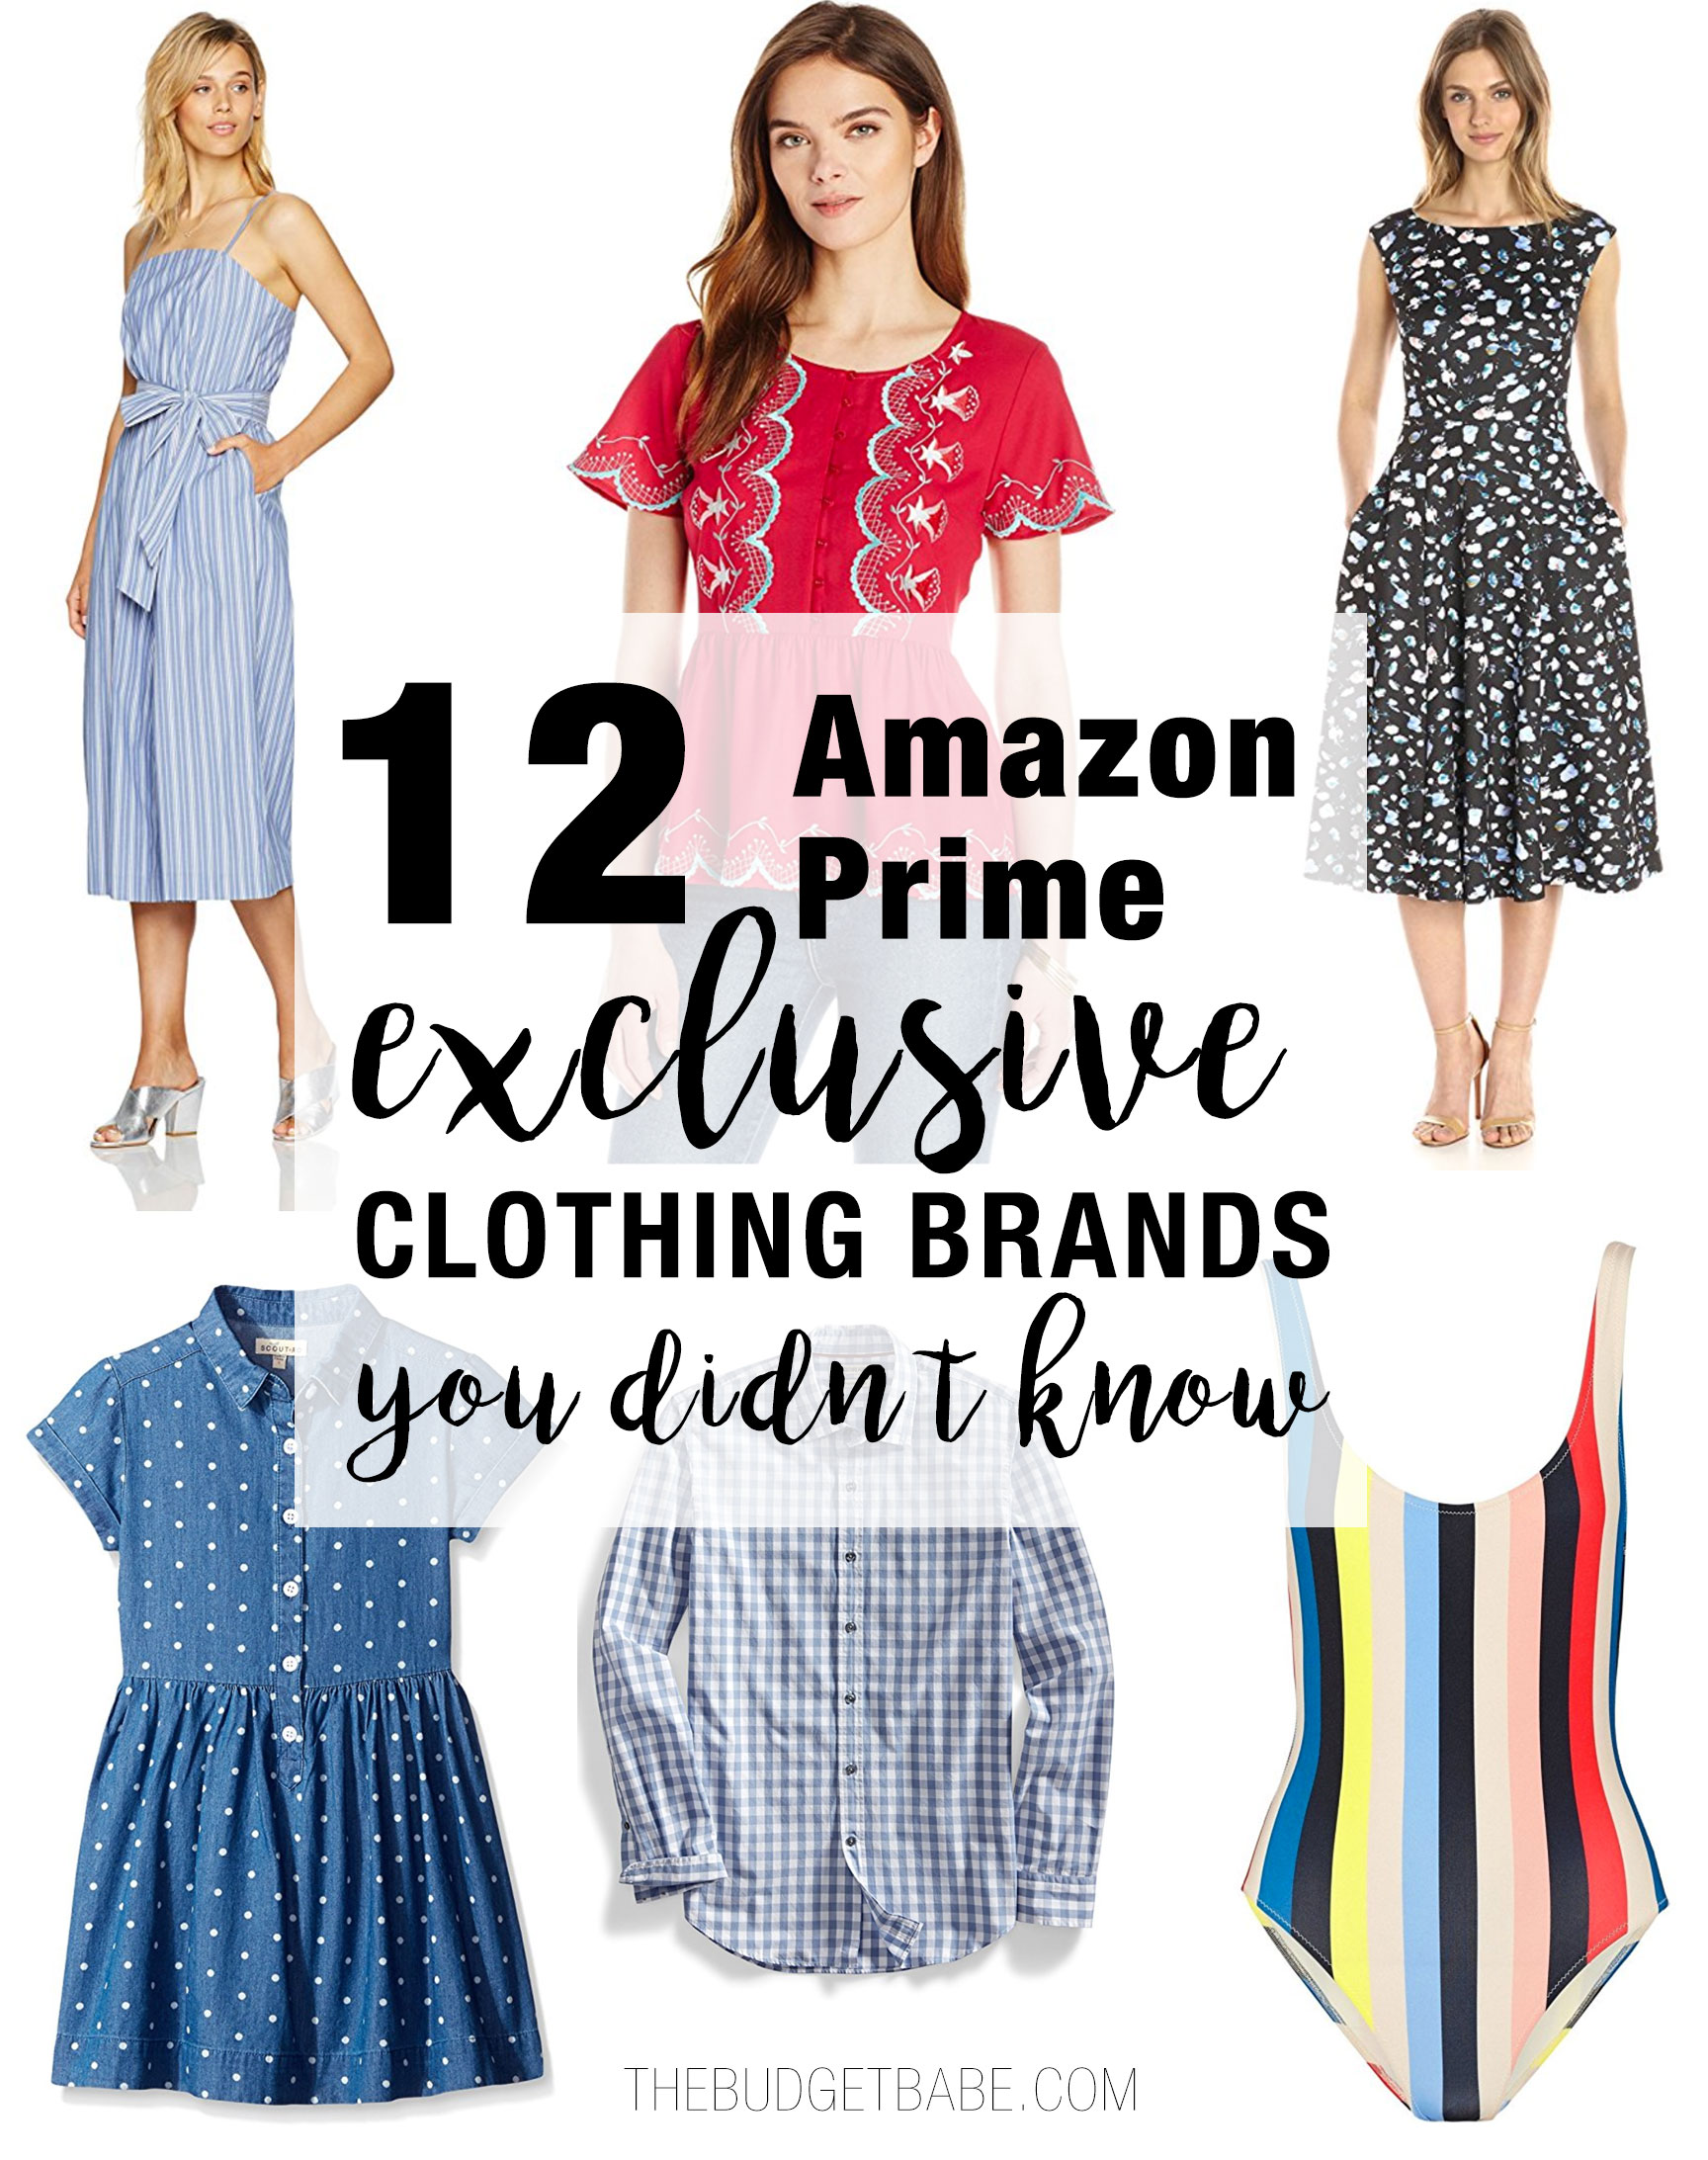 Did you know Amazon's in-house clothing brands aren't for everyone?